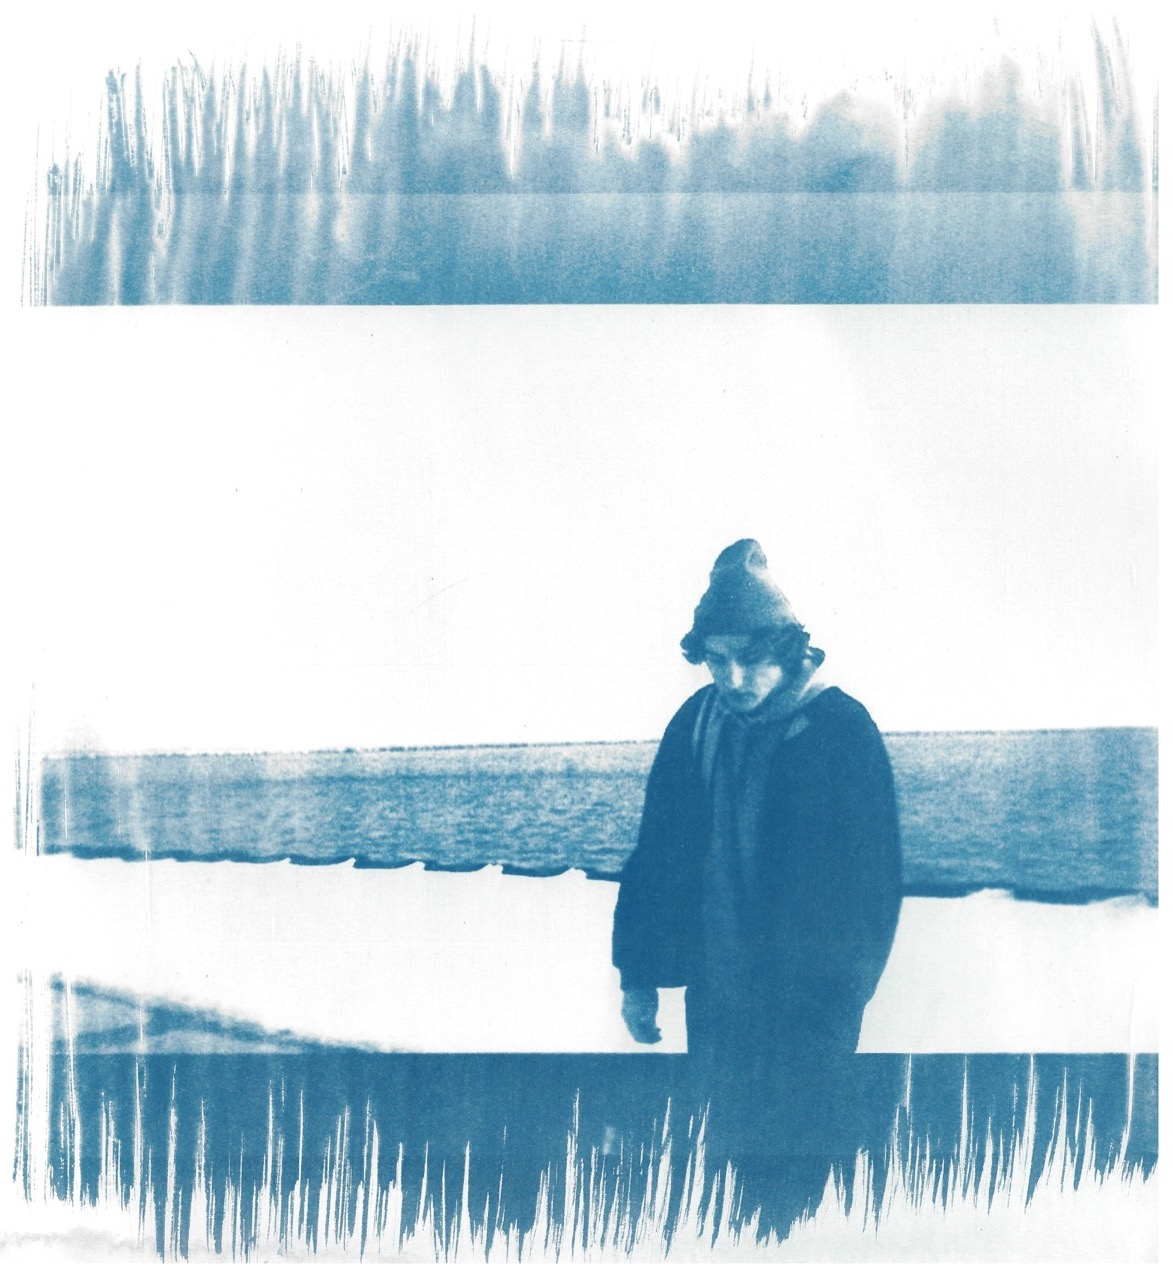 Self Portrait - Cyanotype